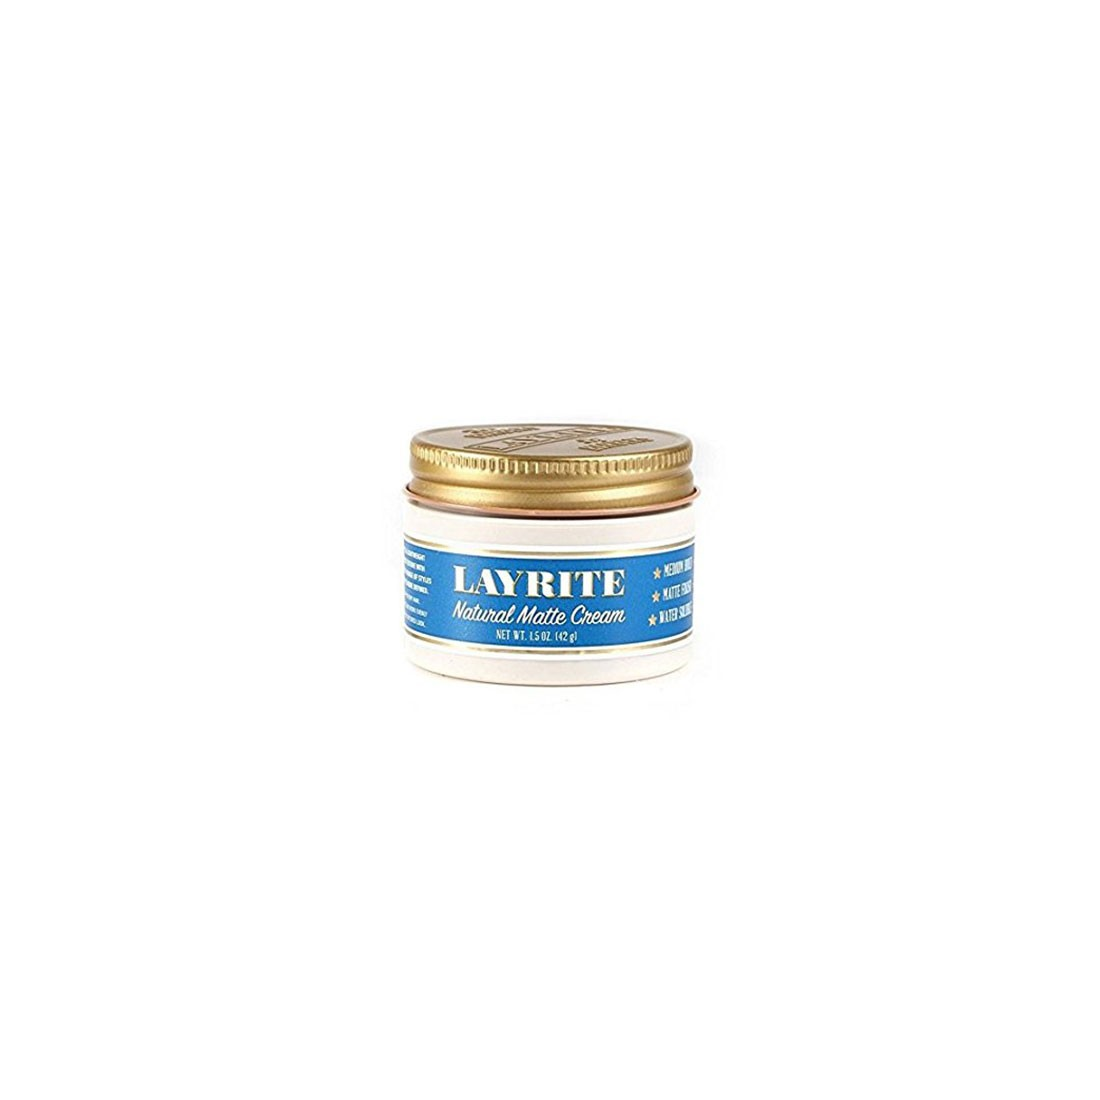 Layrite Natural Matte Cream 42gr